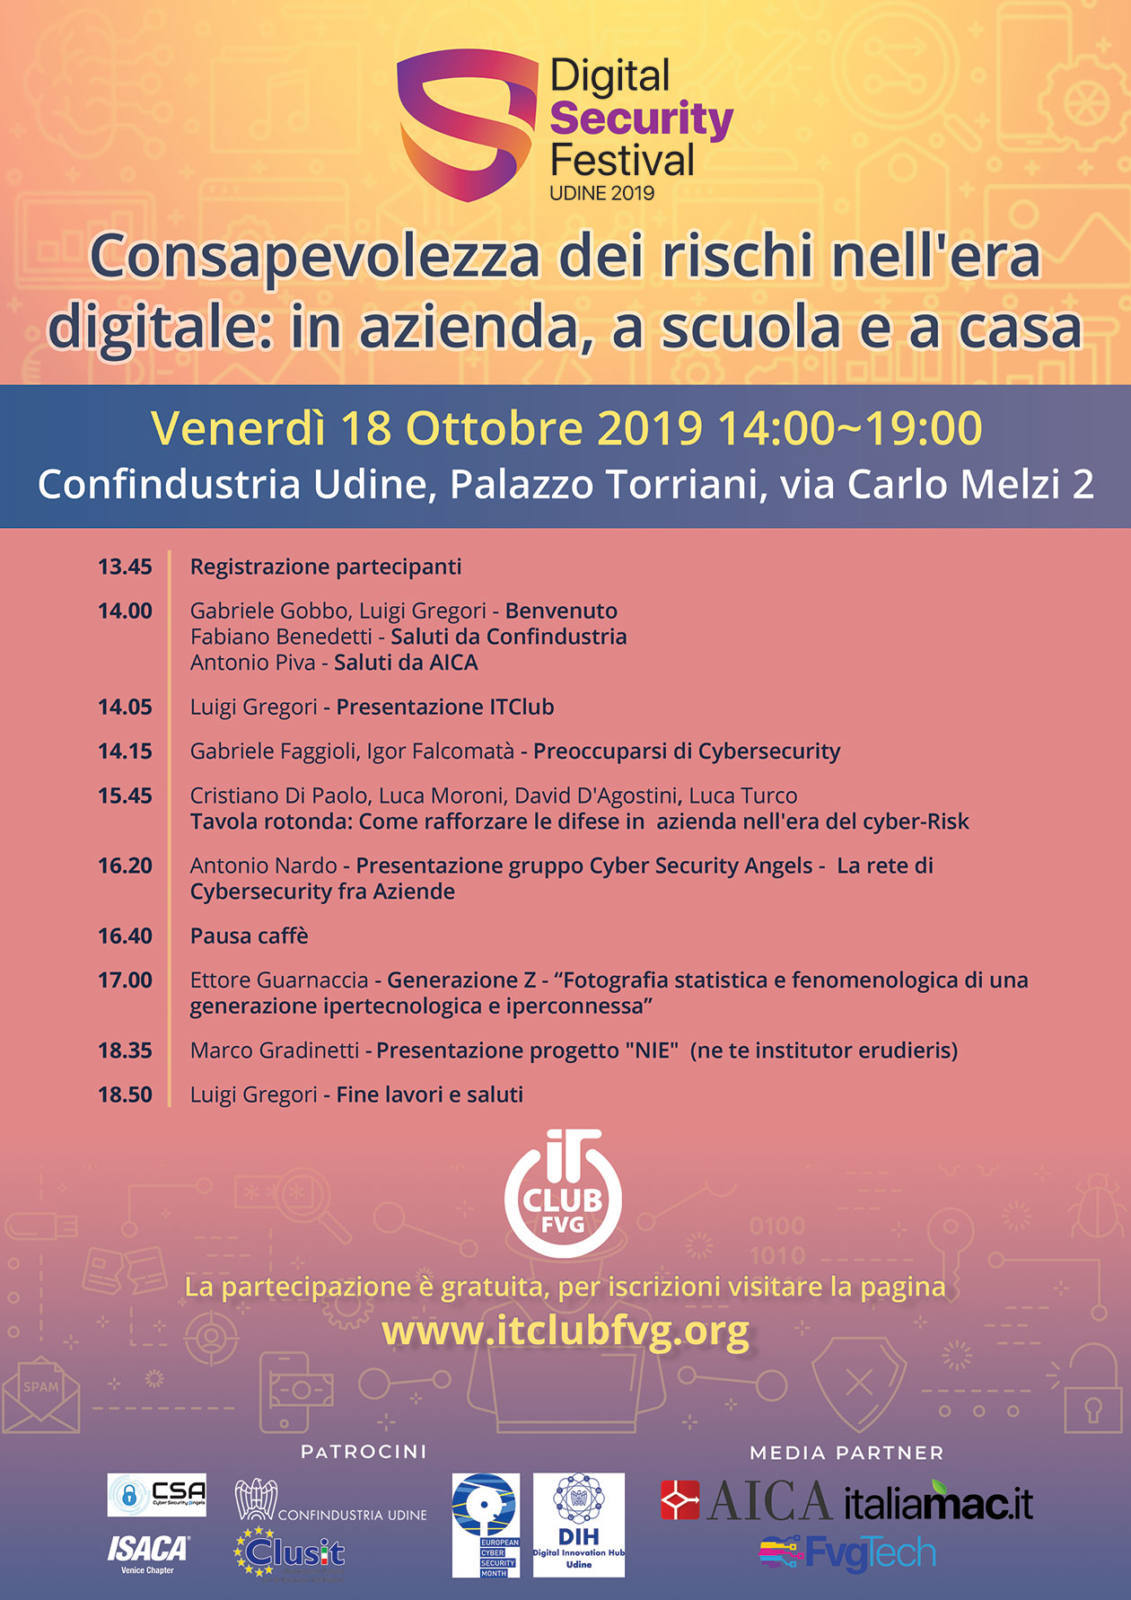 locandina itc digital security Digital Security Festival 2019, 18 ottobre a Udine